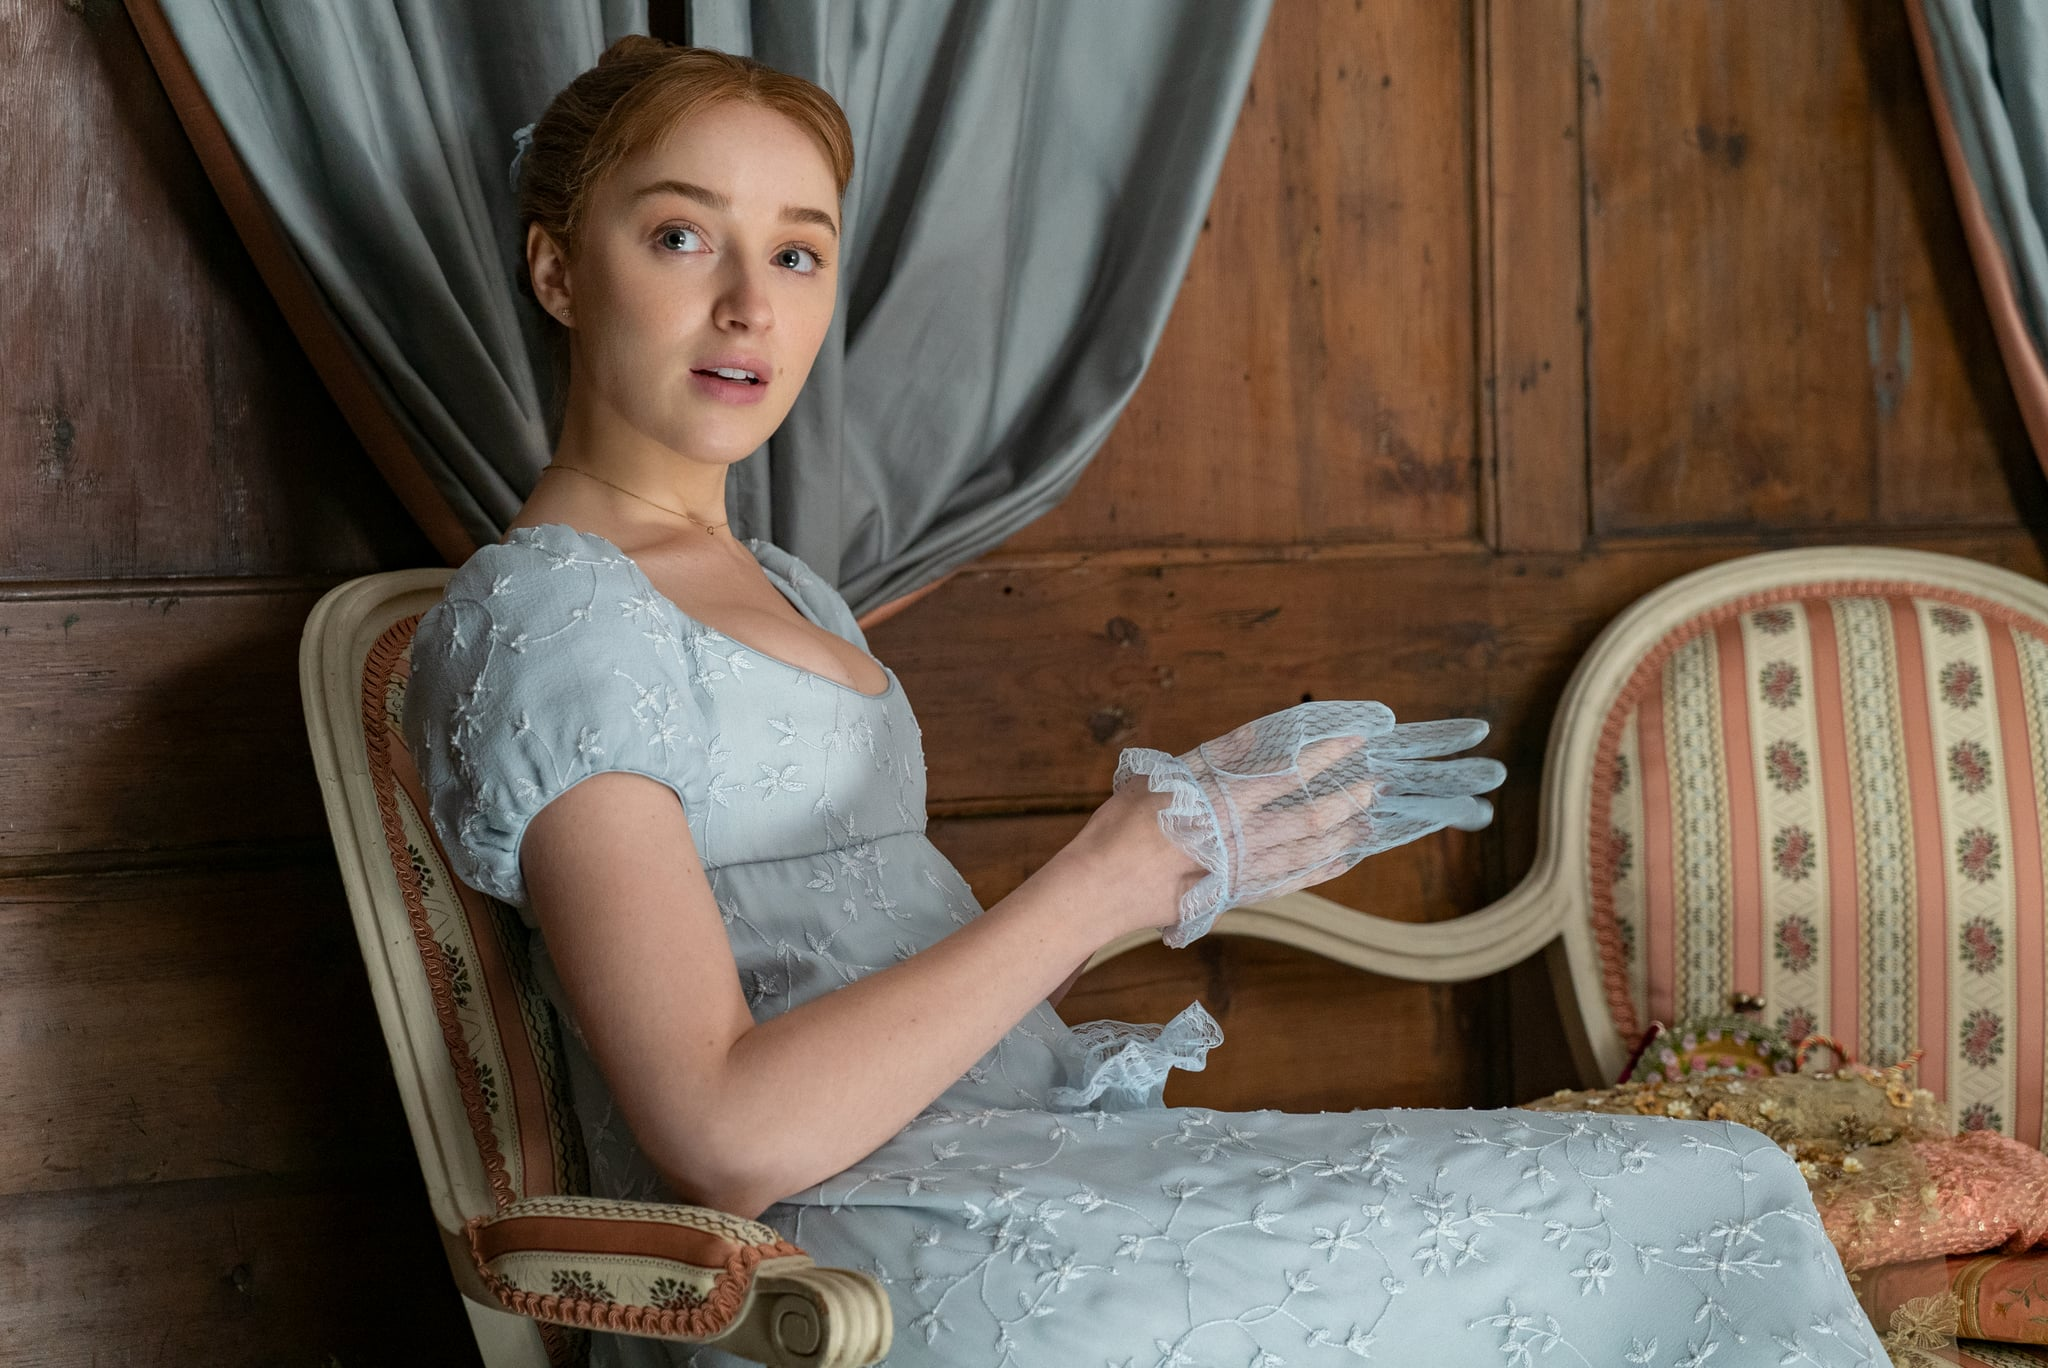 BRIDGERTON (L to R) PHOEBE DYNEVOR as DAPHNE BRIDGERTON in episode 102 of BRIDGERTON Cr. LIAM DANIEL/NETFLIX  2020